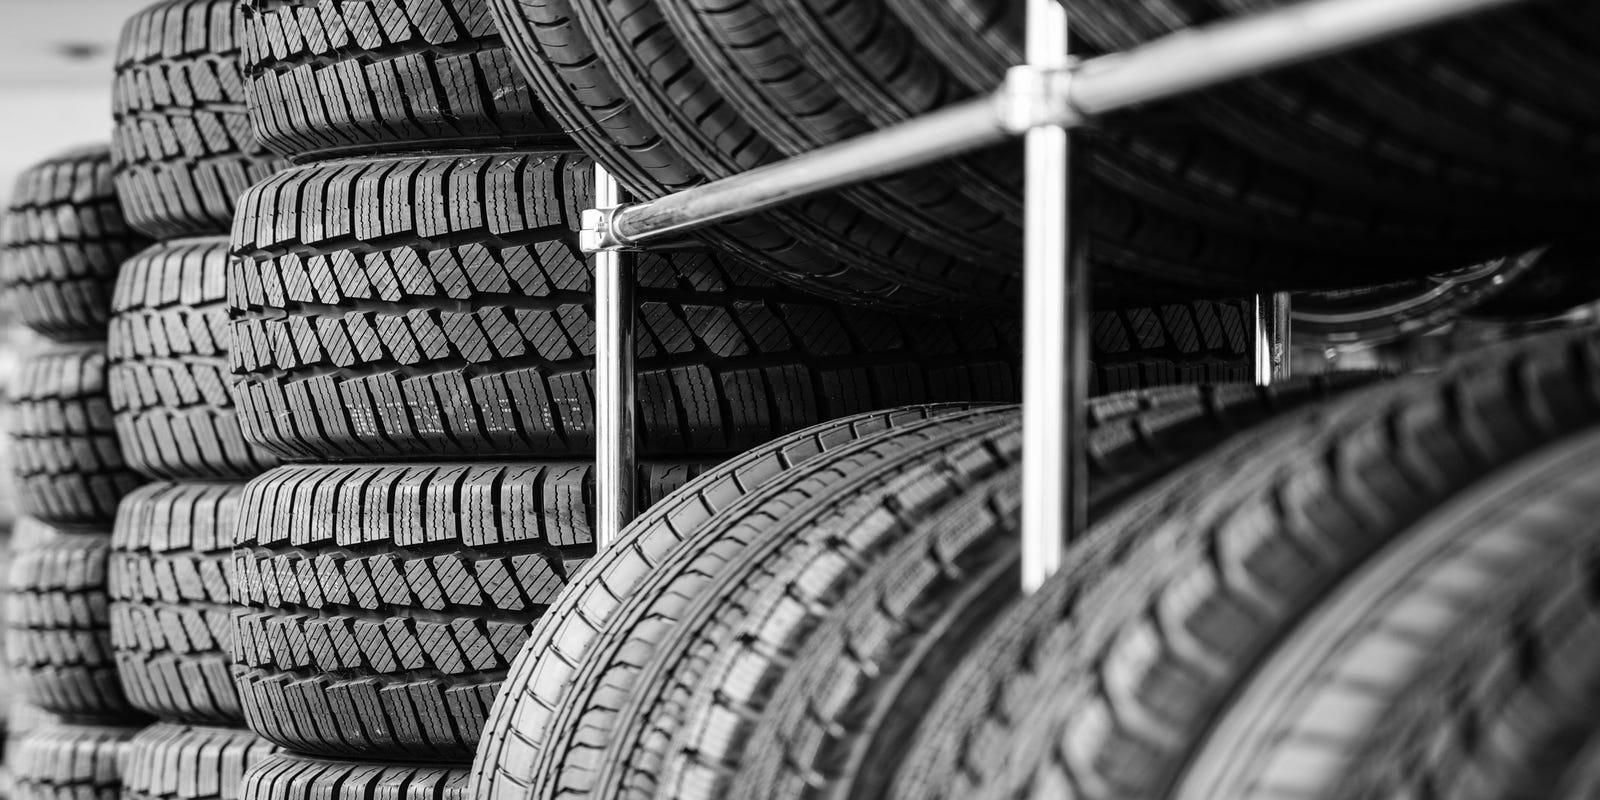 Fact check: Yes, tires may have RFID chips. No, the government isn't tracking you.